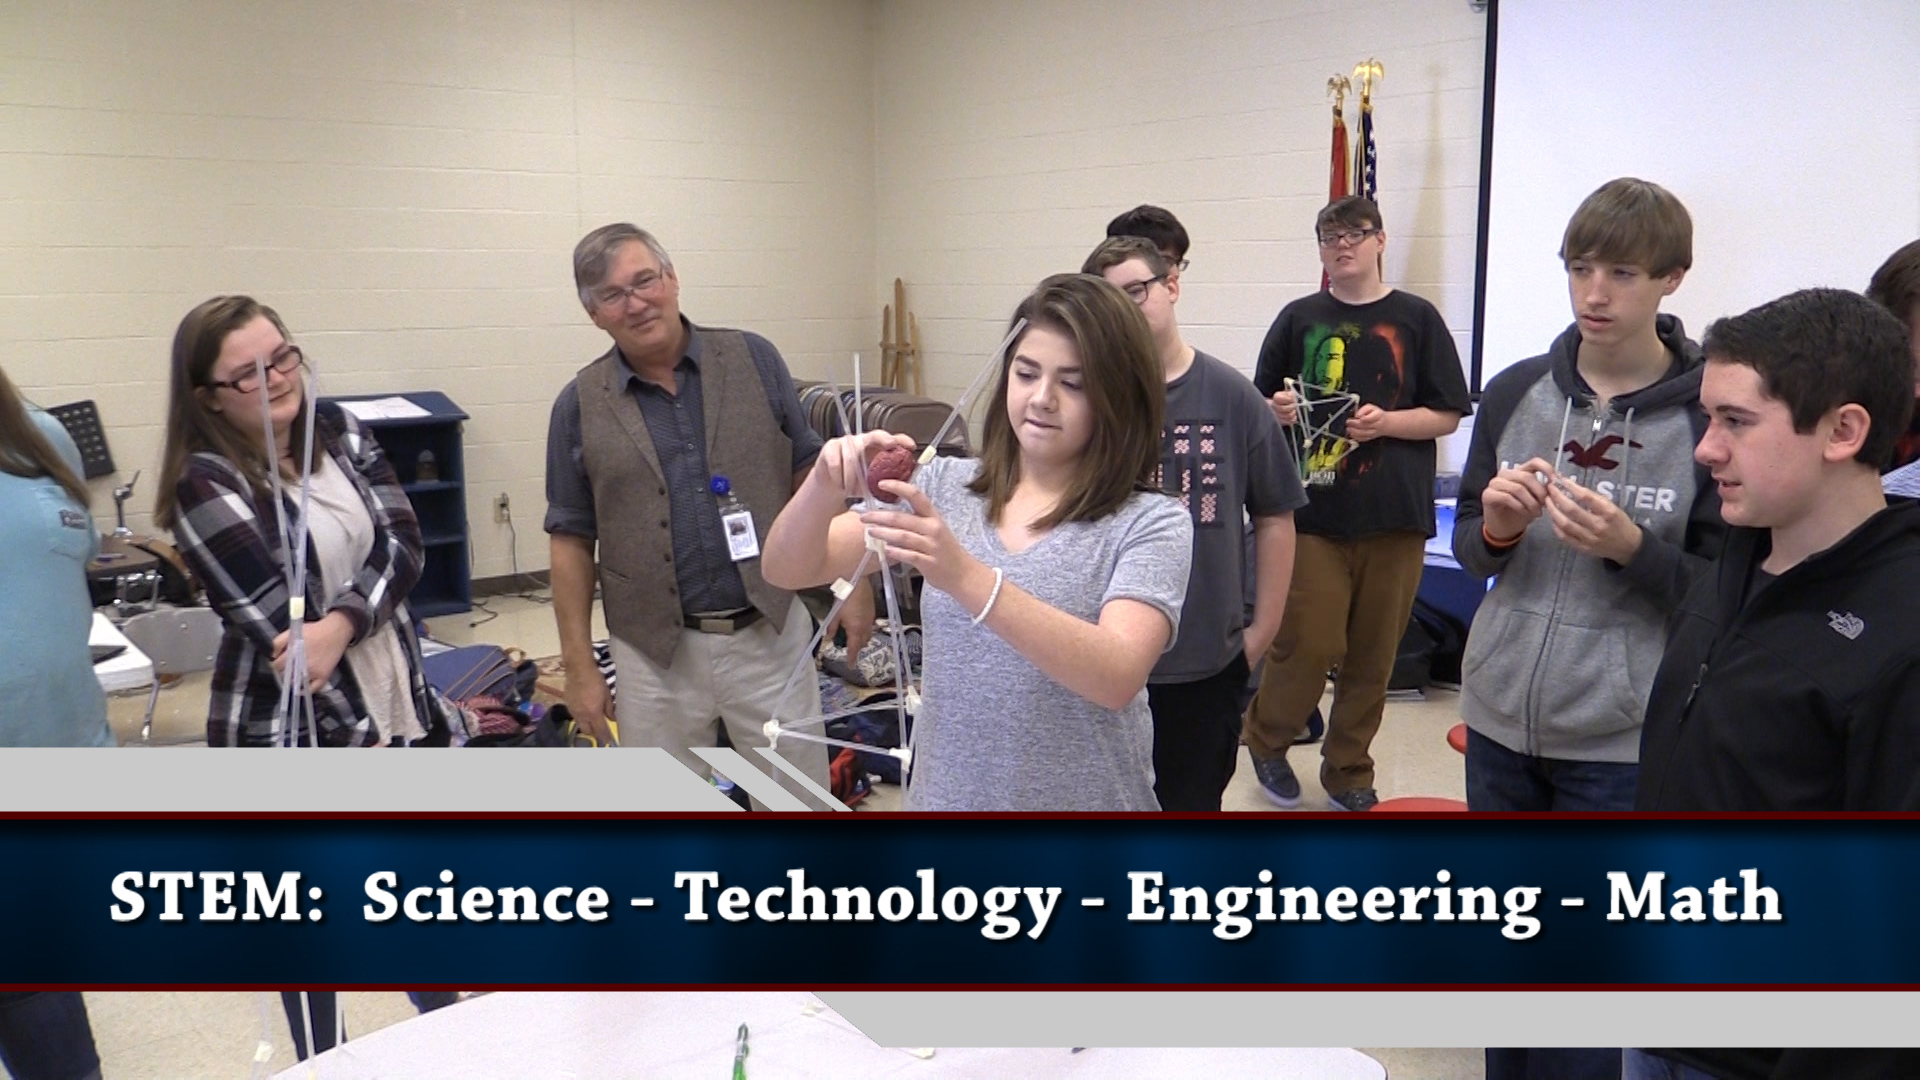 VIDEO - STEM on Wheels